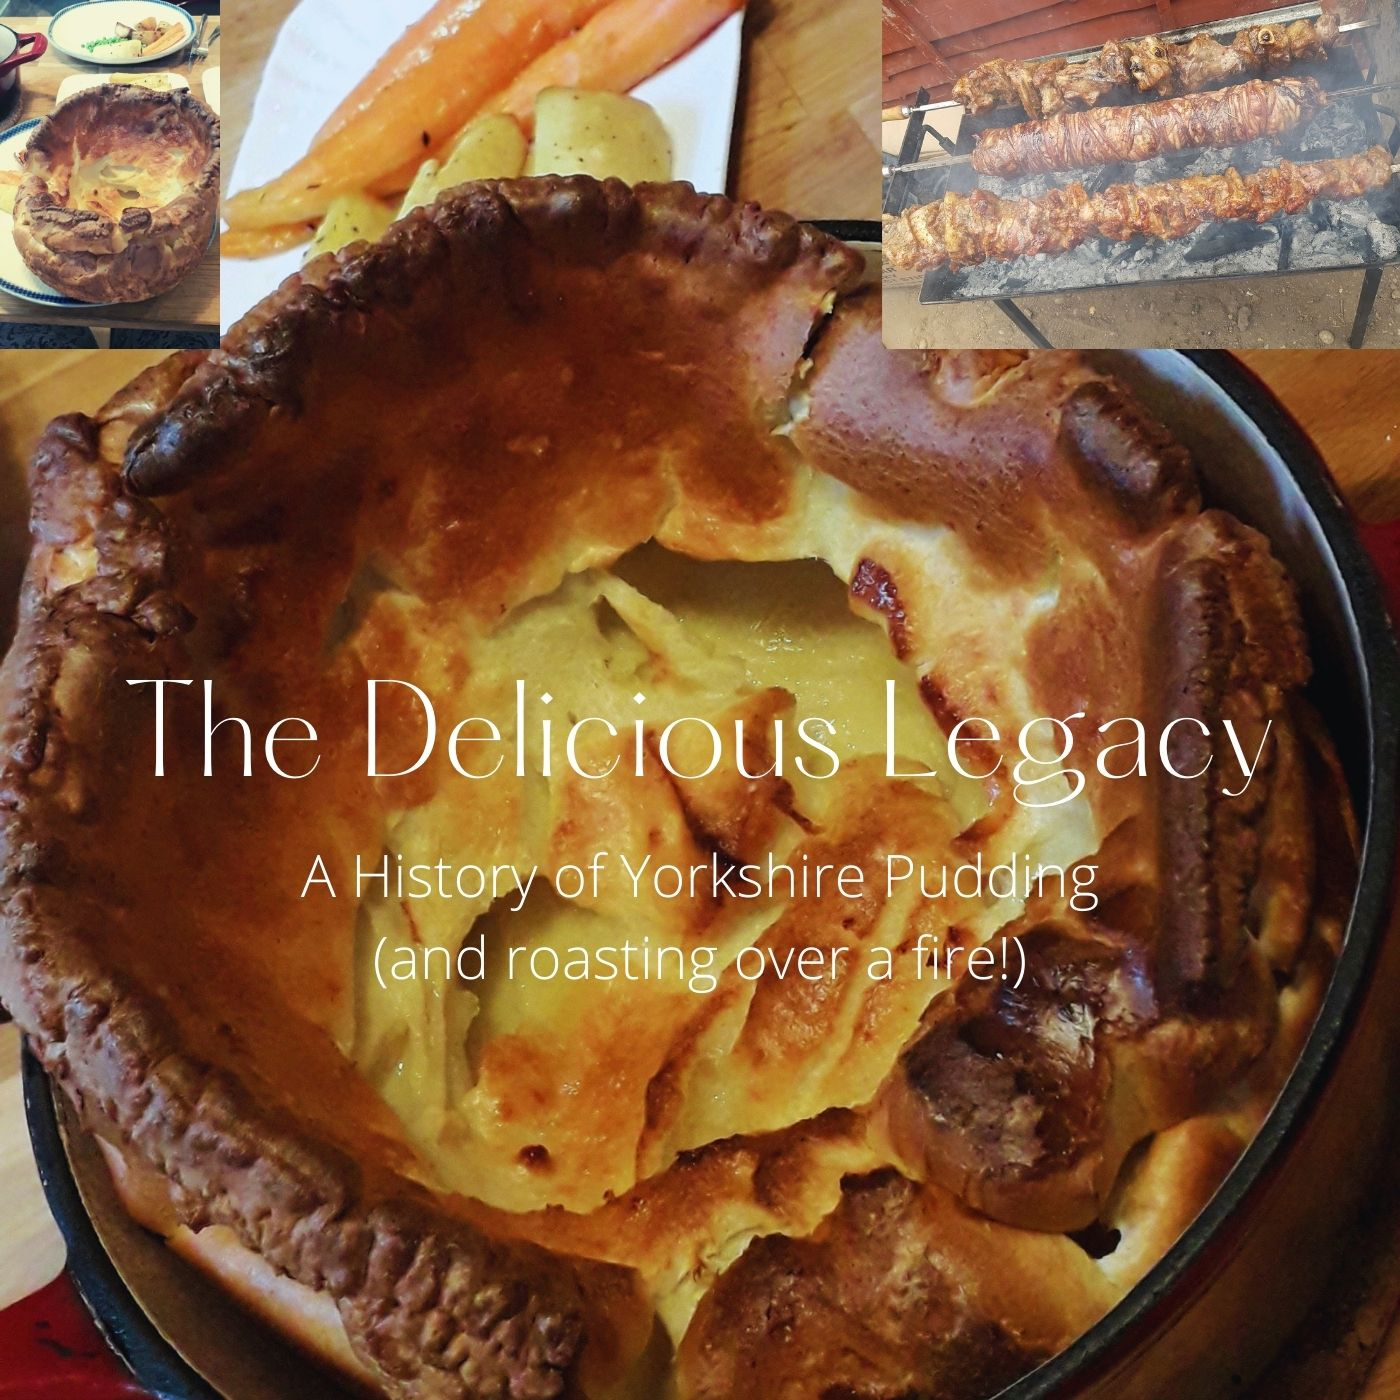 Yearning for Yorkshire Pudding (A History of)